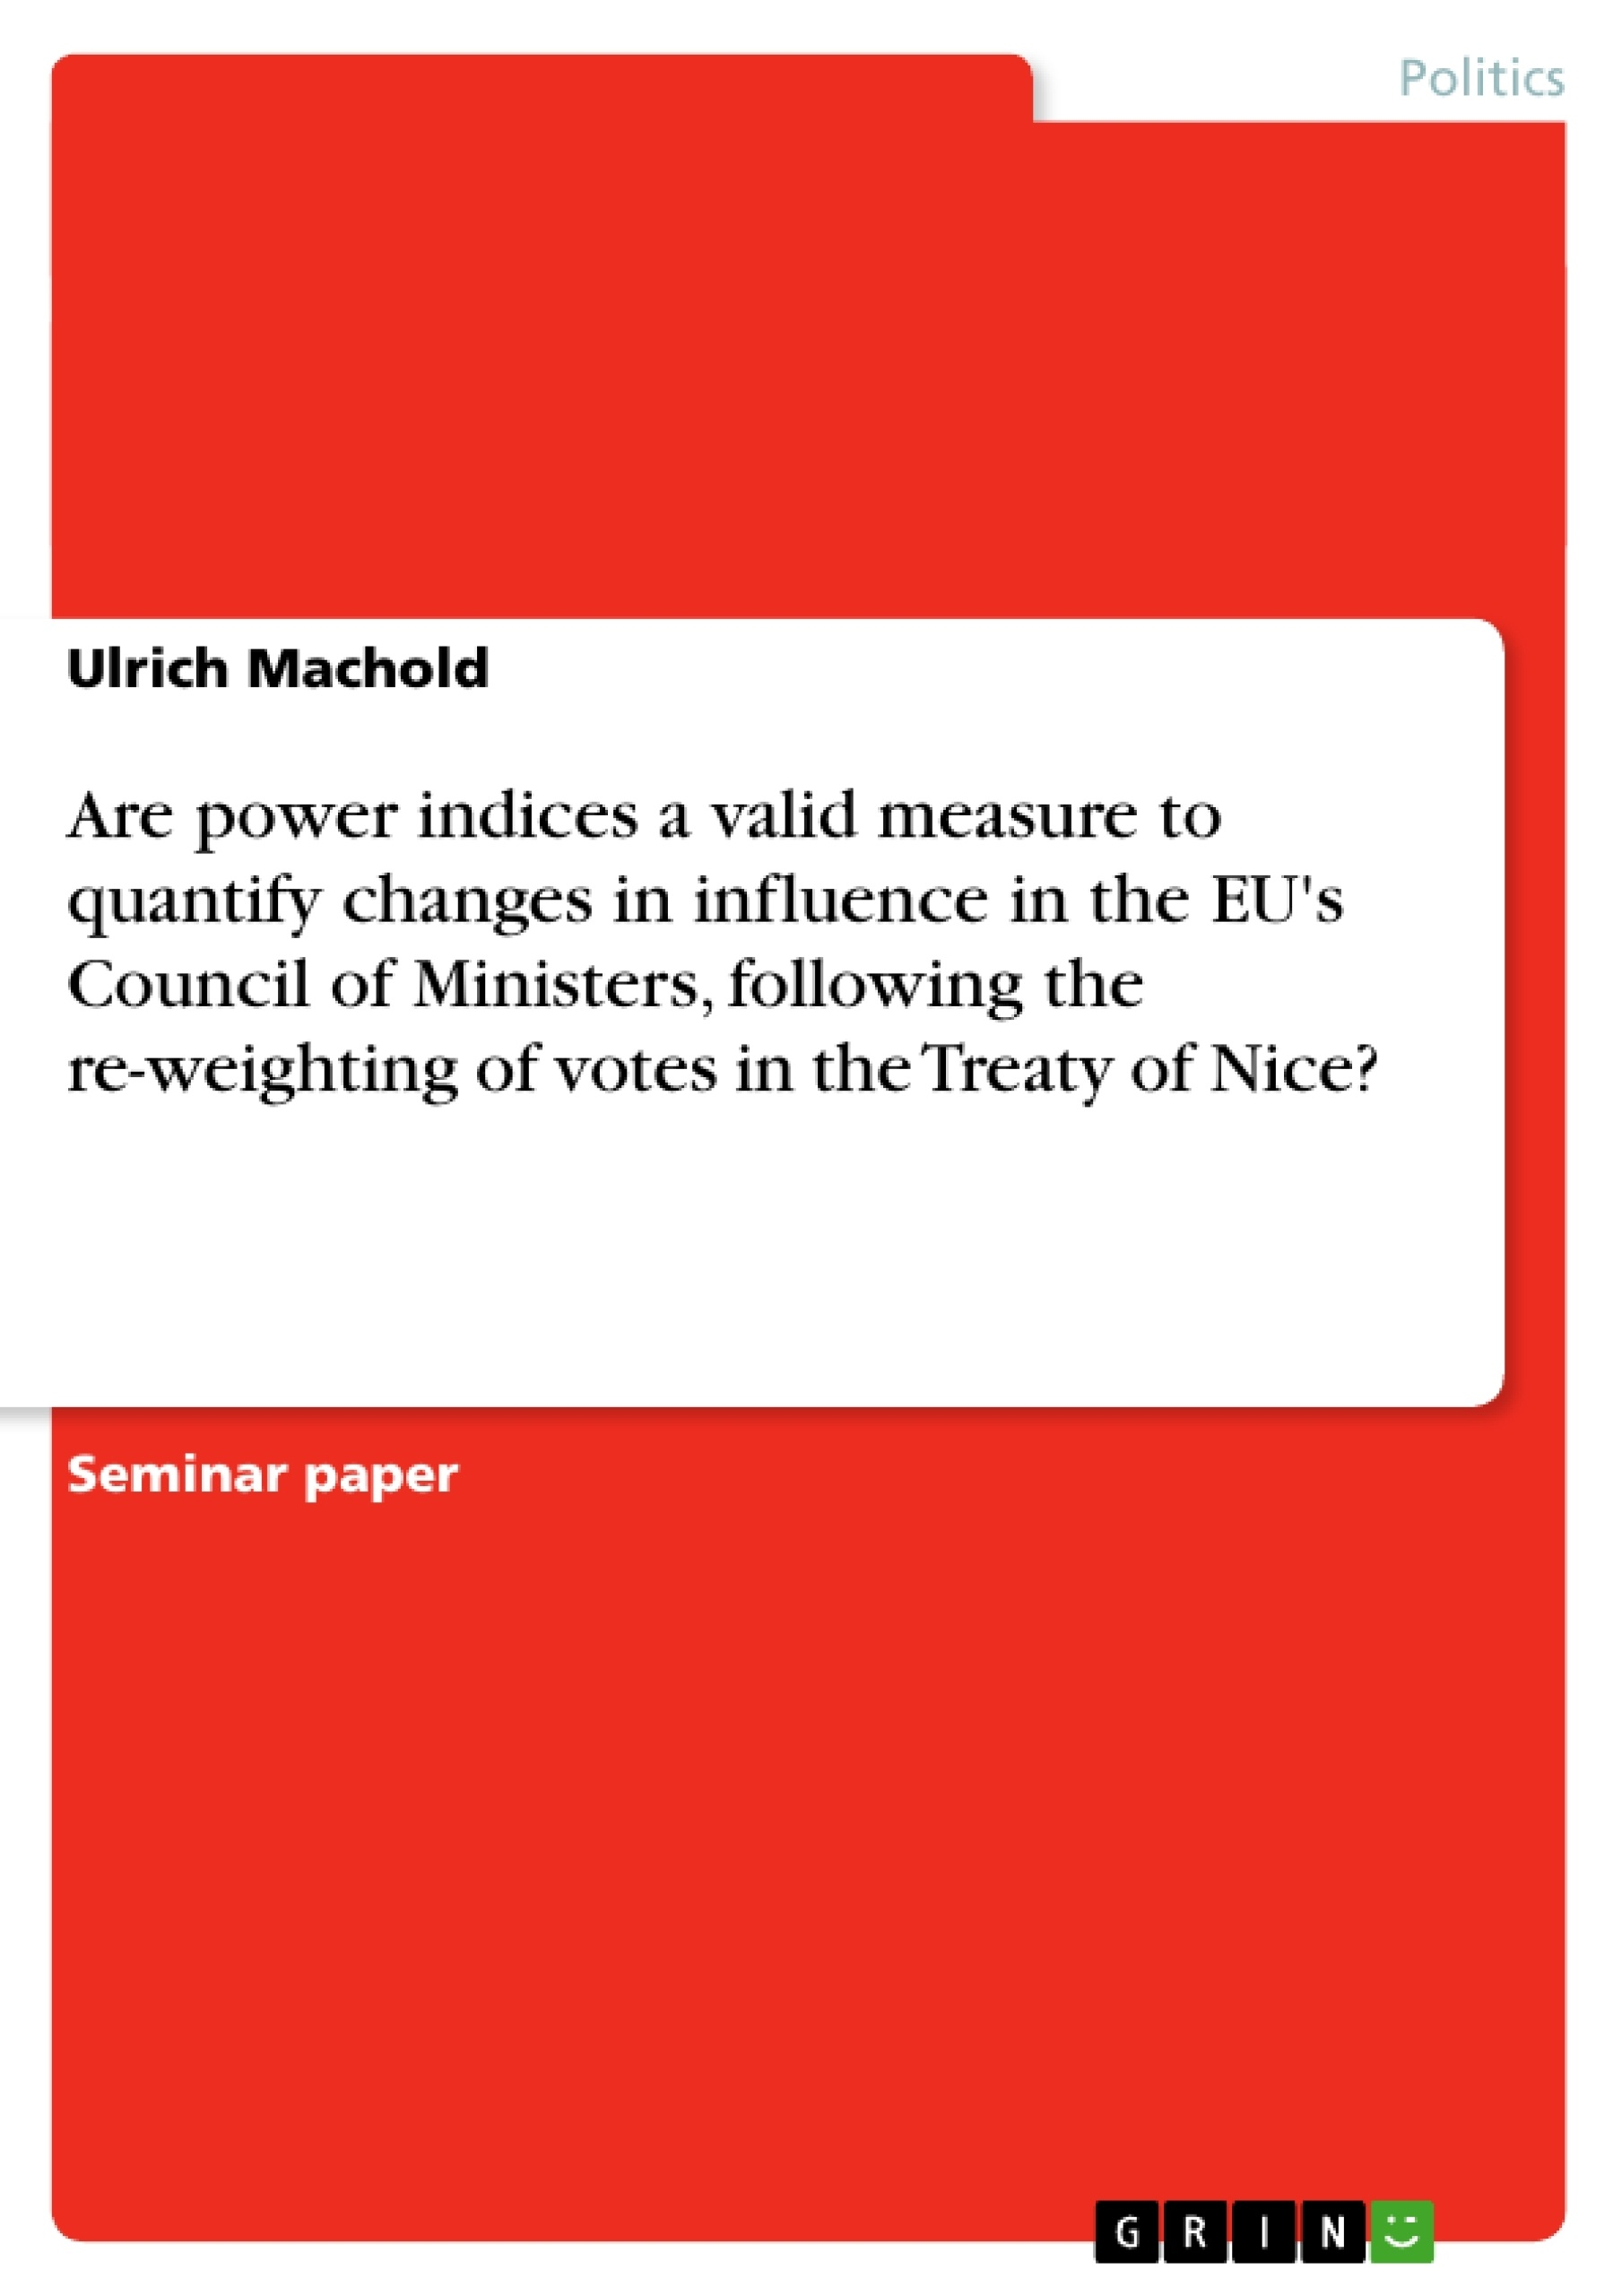 Title: Are power indices a valid measure to quantify changes in influence in the EU's Council of Ministers, following the re-weighting of votes in the Treaty of Nice?